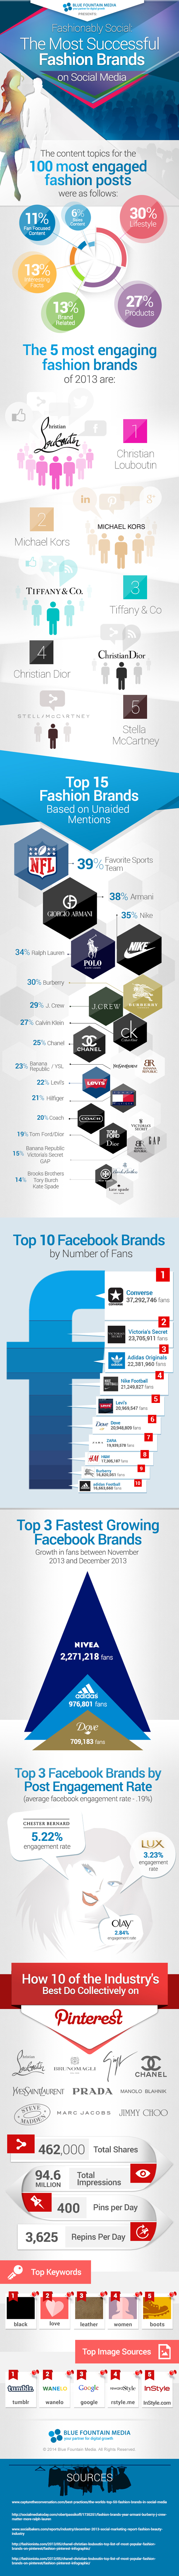 The Most Successful Fashion Brands on Social Media #infographic